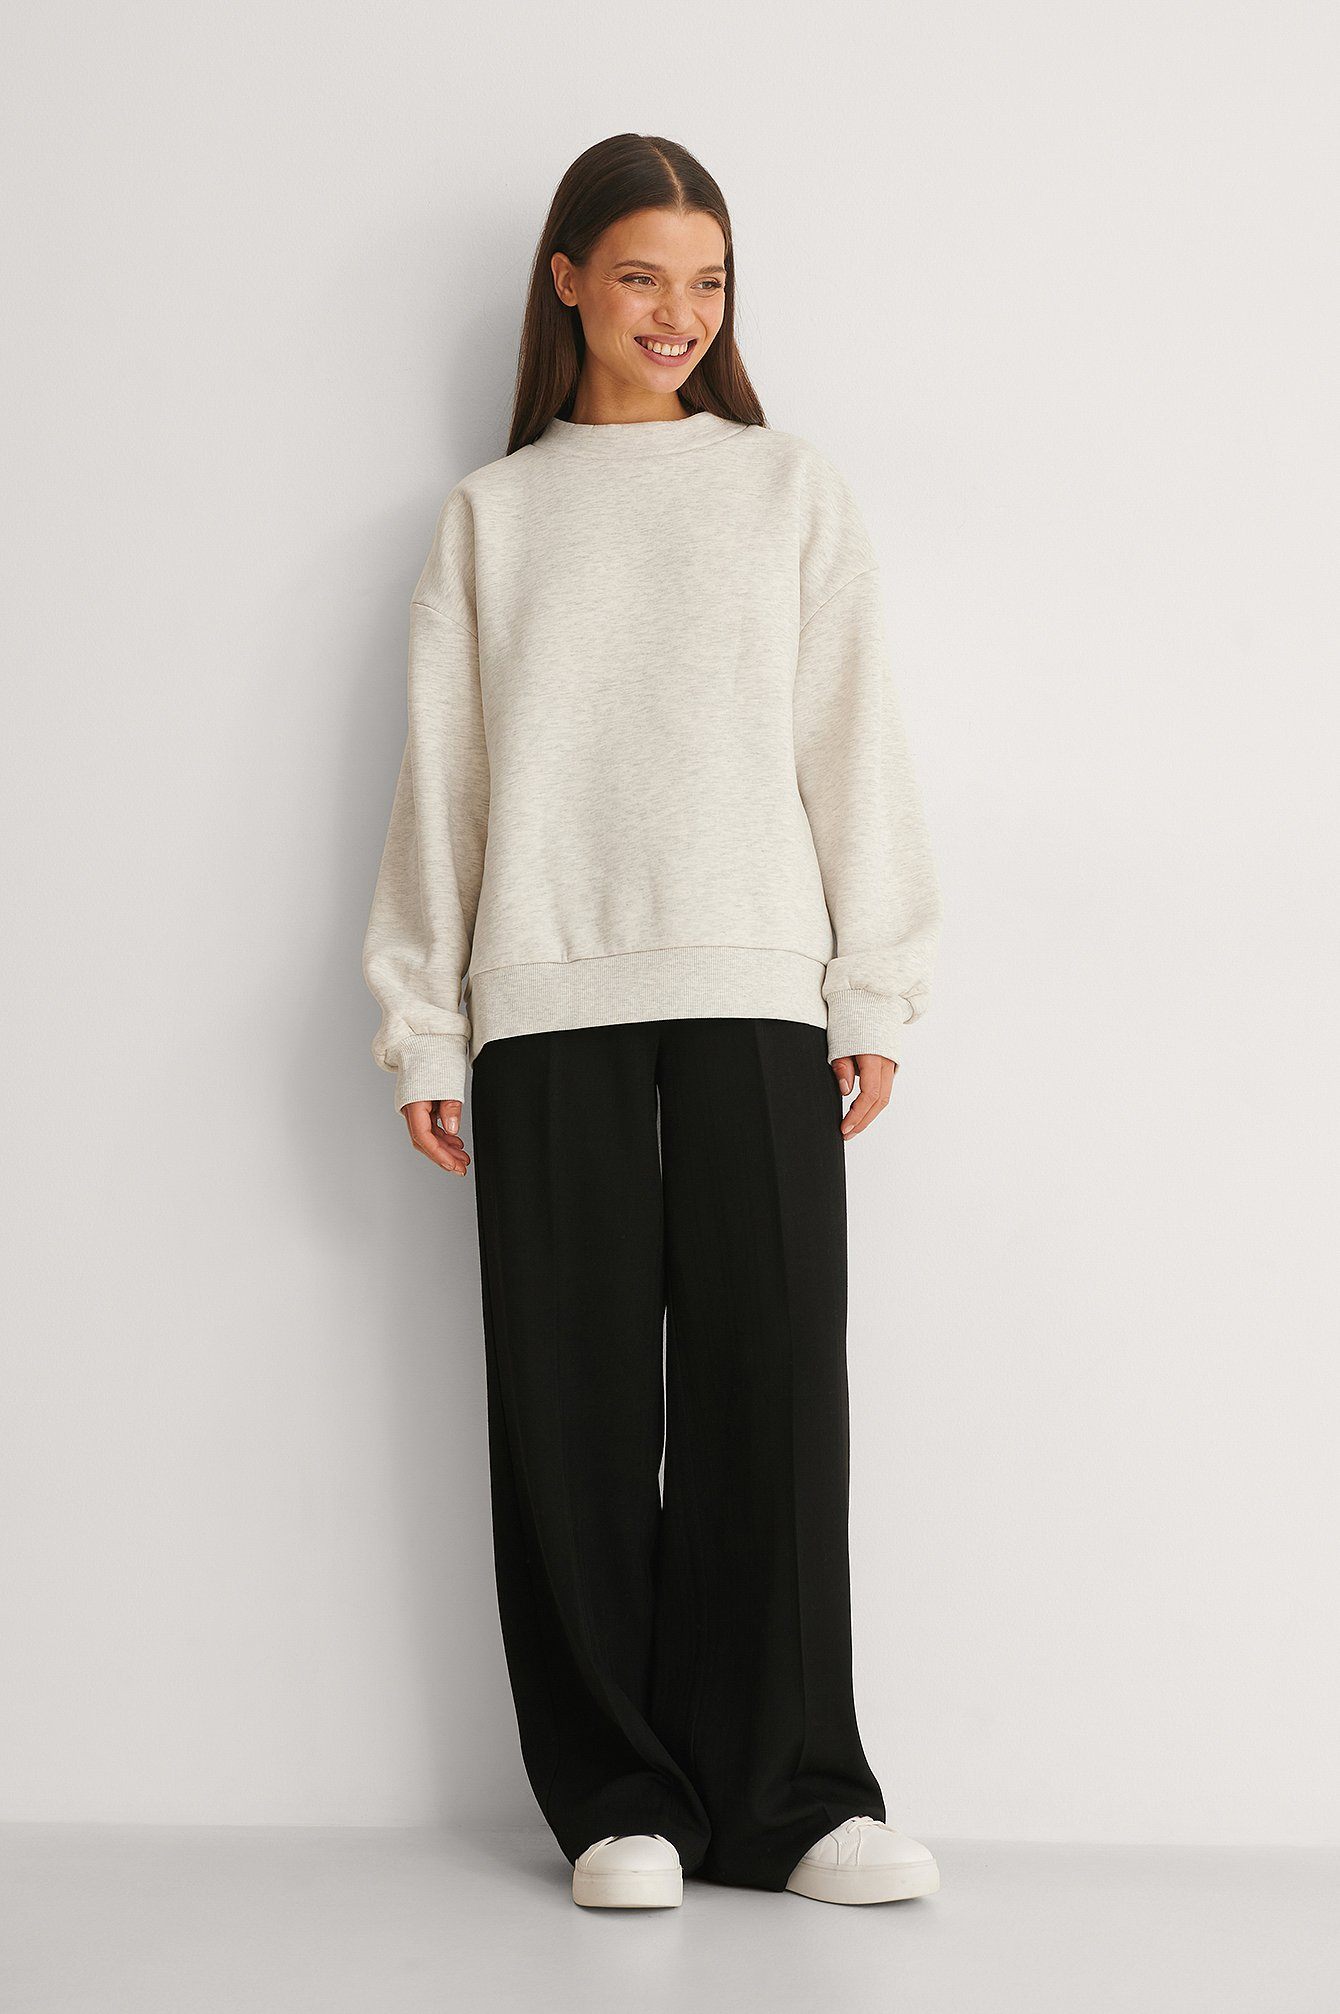 High Neck Detail Sweatshirt Outfit.